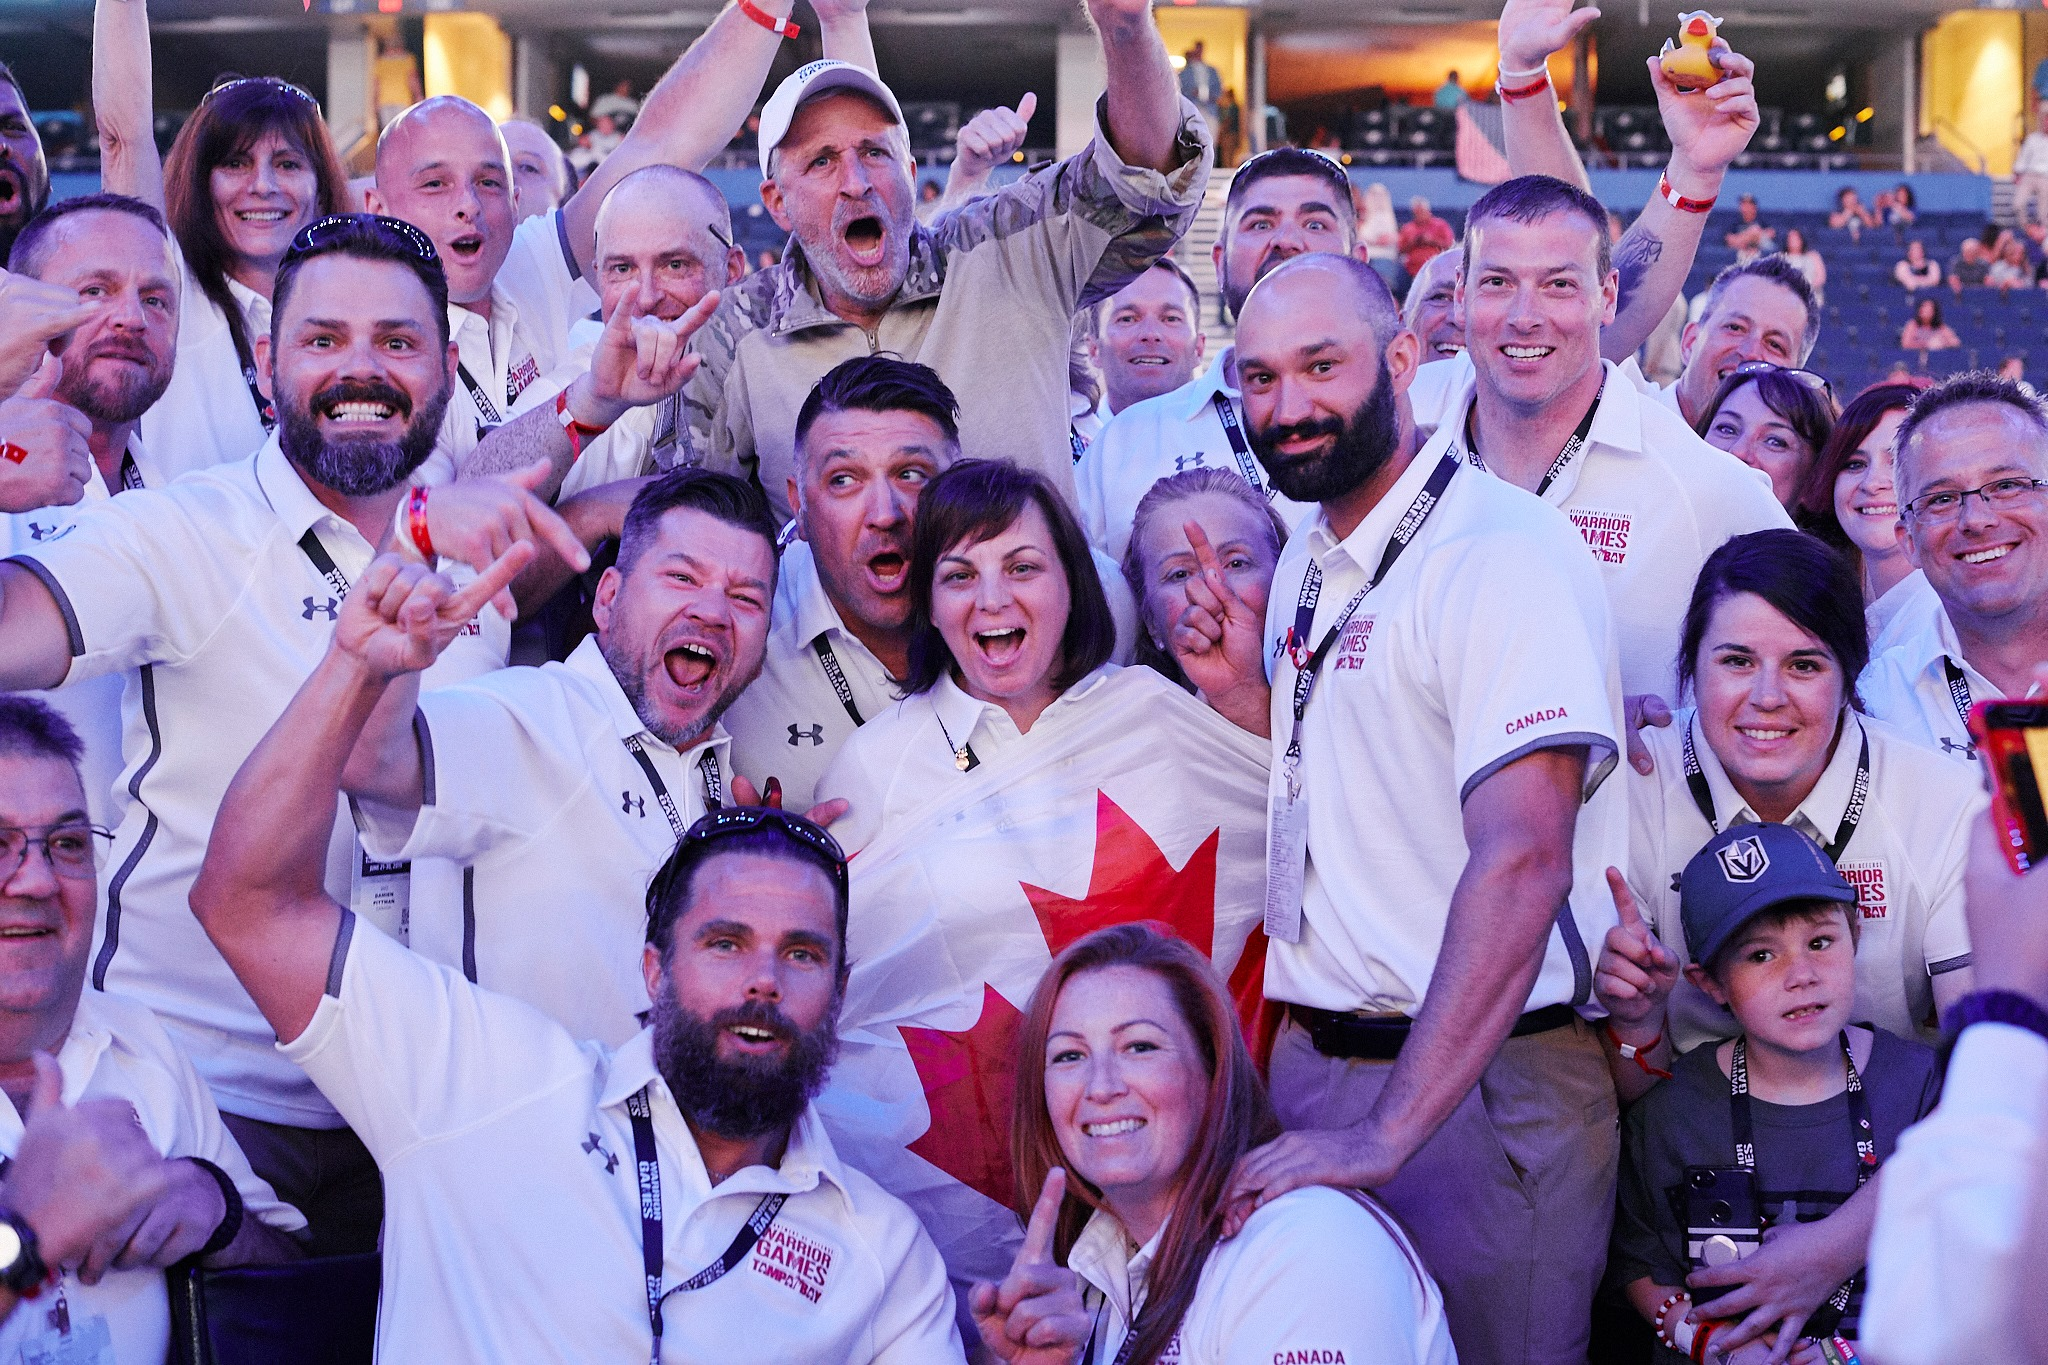 Comedian and former talk show host Jon Stewart (centre, top row) poses for a group photo with Team Canada athletes during the Warrior Games in Tampa, Fla. Photo credit: Soldier On